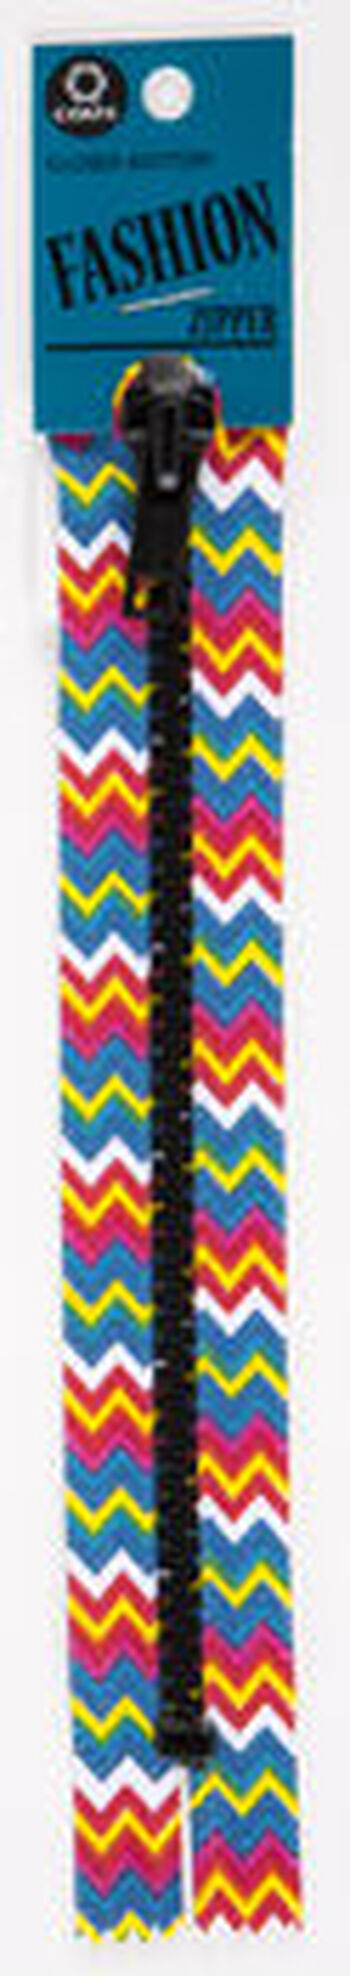 Coats & Clark 7'' Printed Closed End Fashion Zipper-Chevron